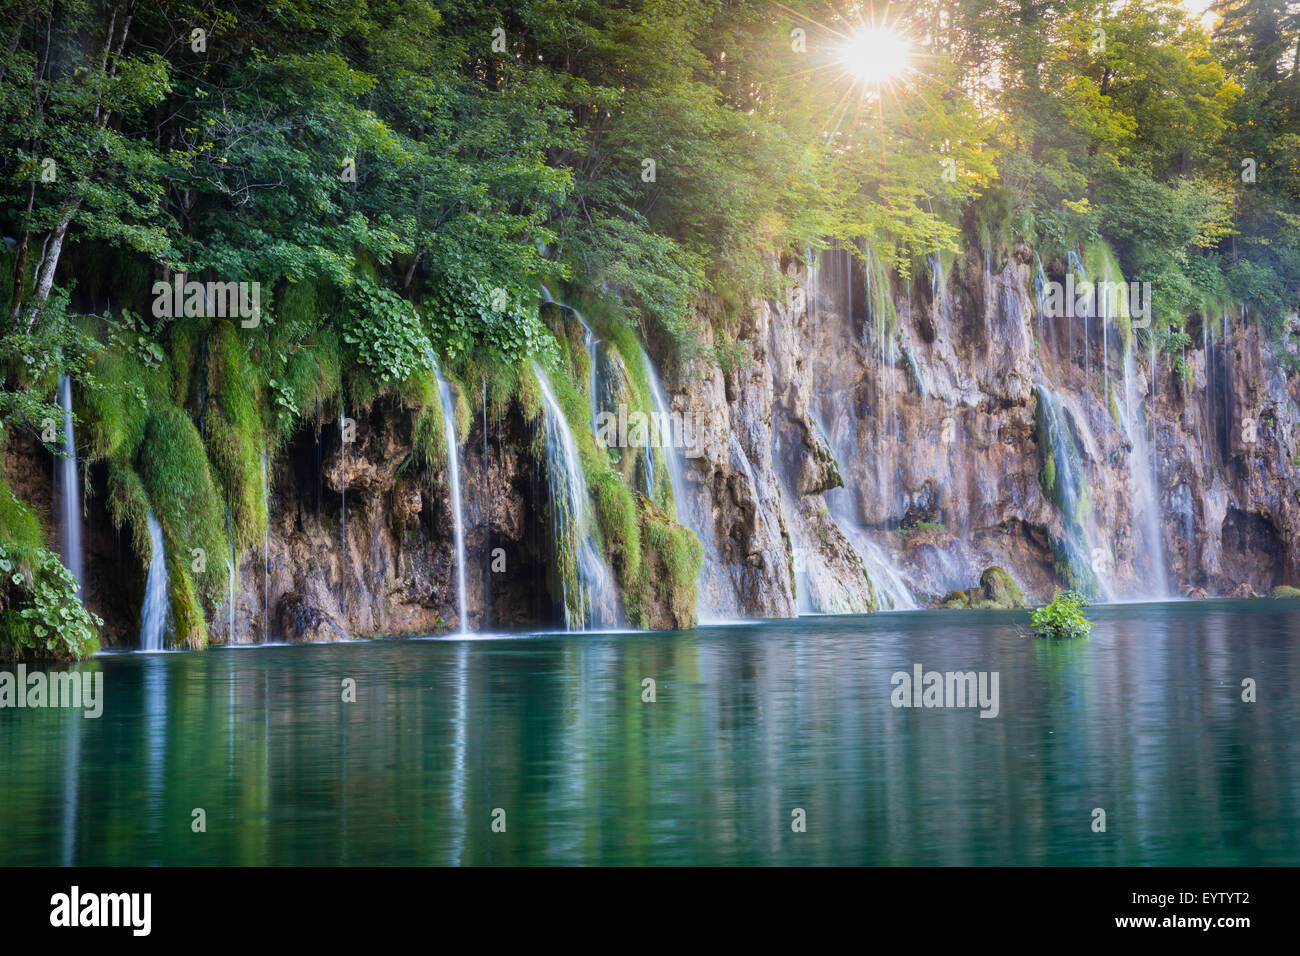 Plitvice Lakes National Park is one of the oldest national parks in Southeast Europe and the largest national park - Stock Image